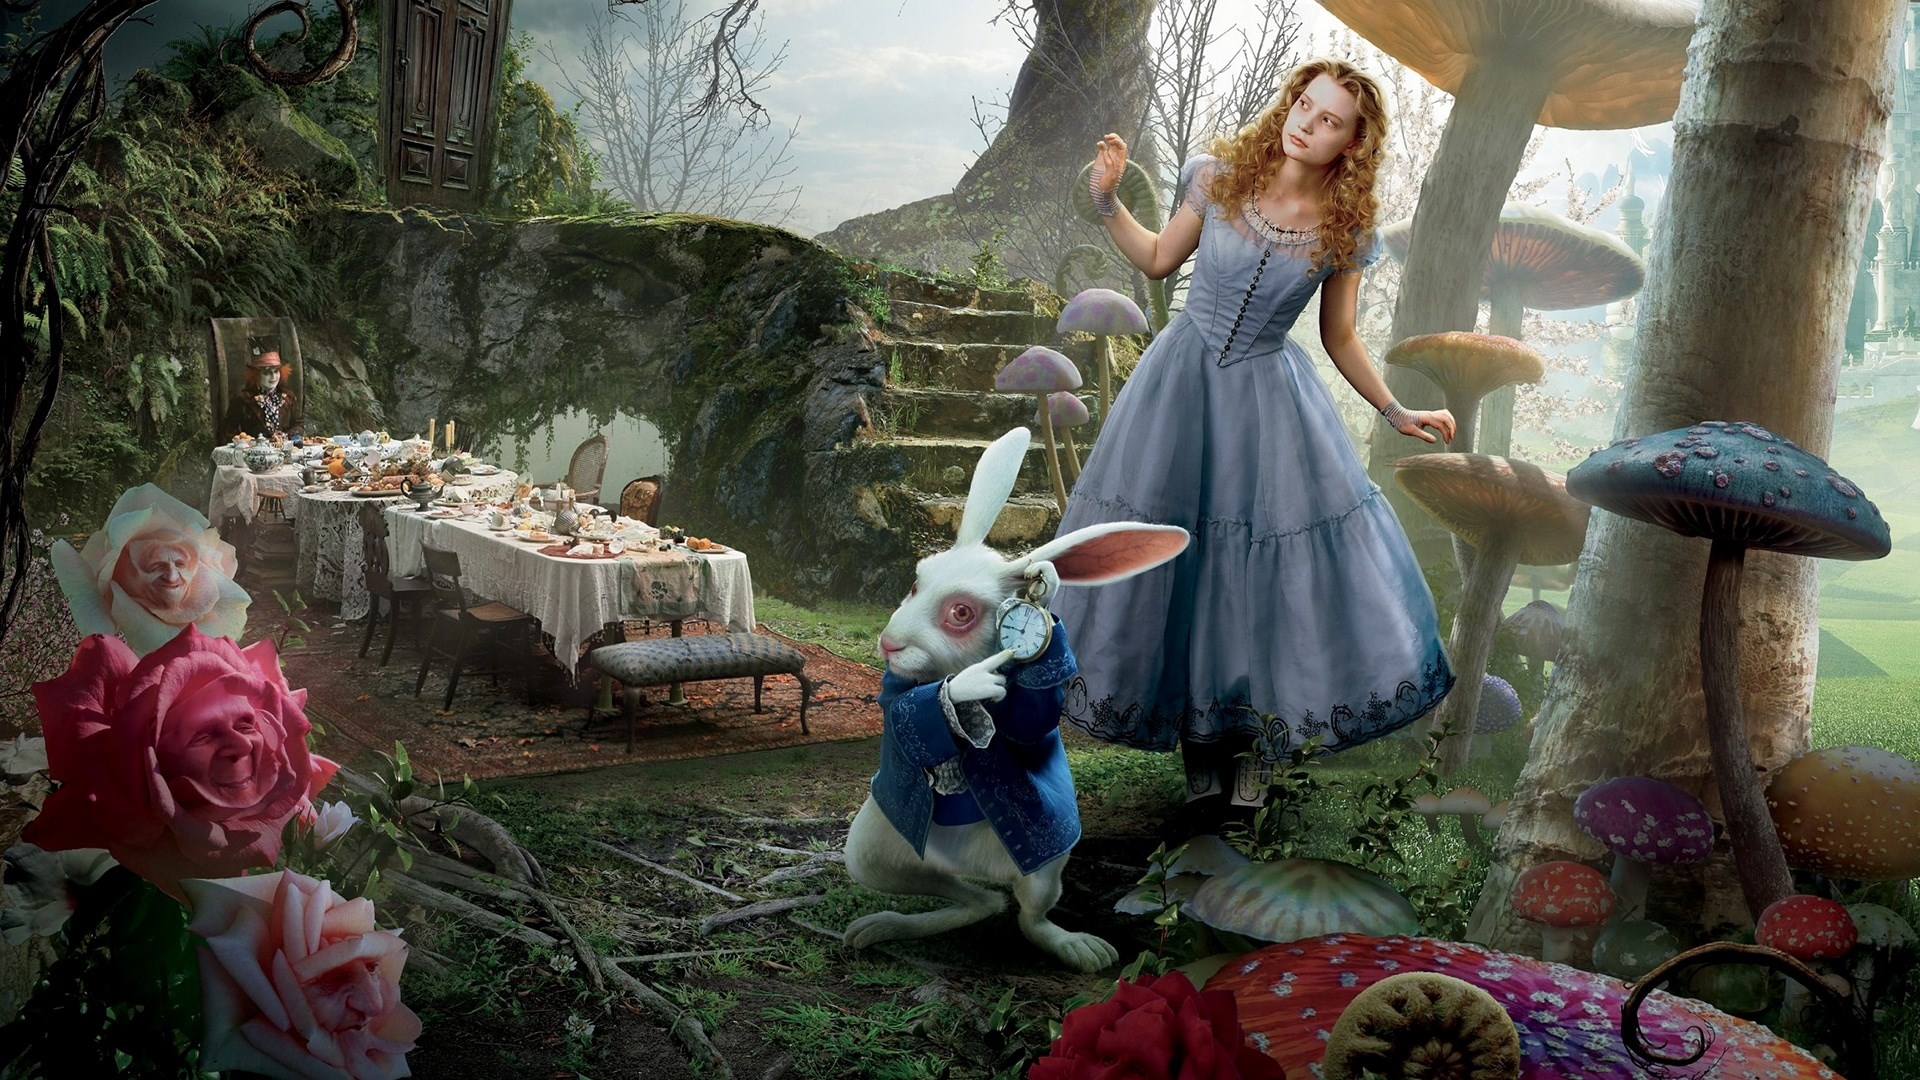 Alice (Mia Wasikoska) and the White Rabbit arrive for the Mad Hatter's tea party in Alice in Wonderland (2010)